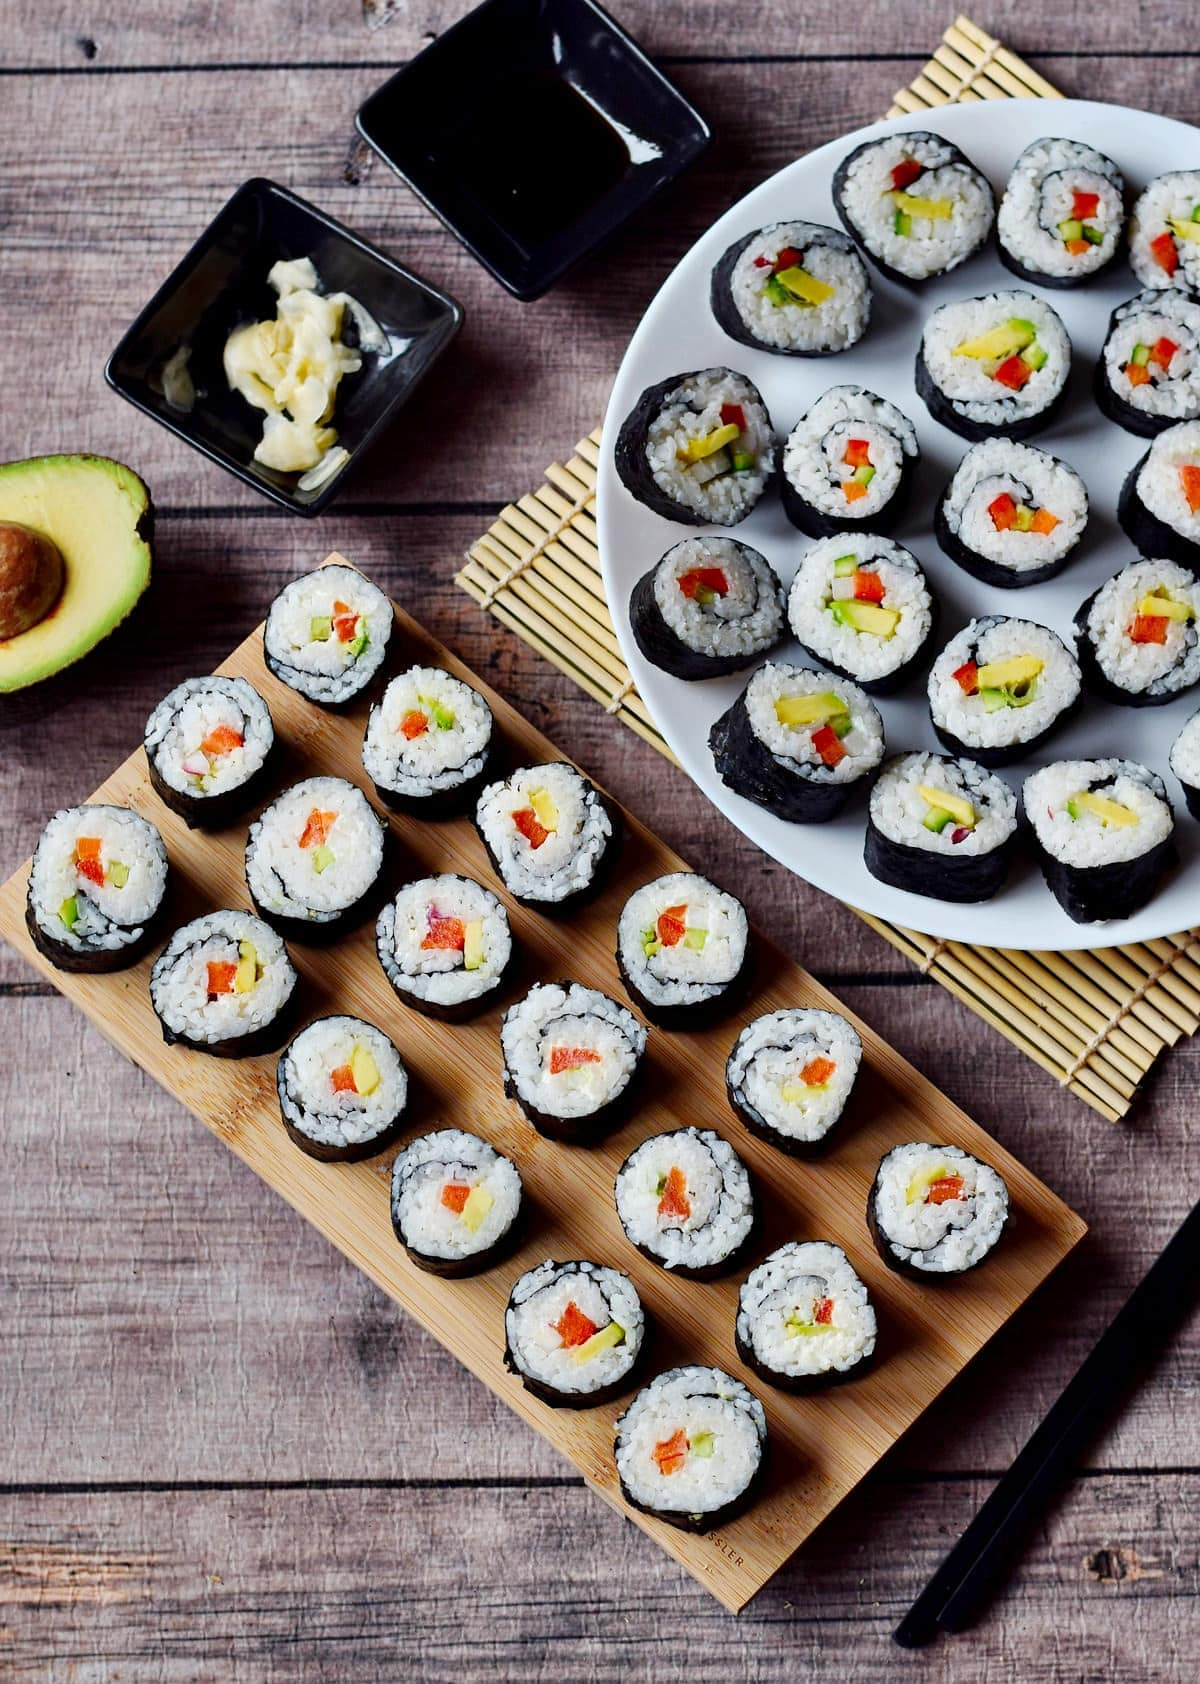 sushi without fish on wooden board and plate from above